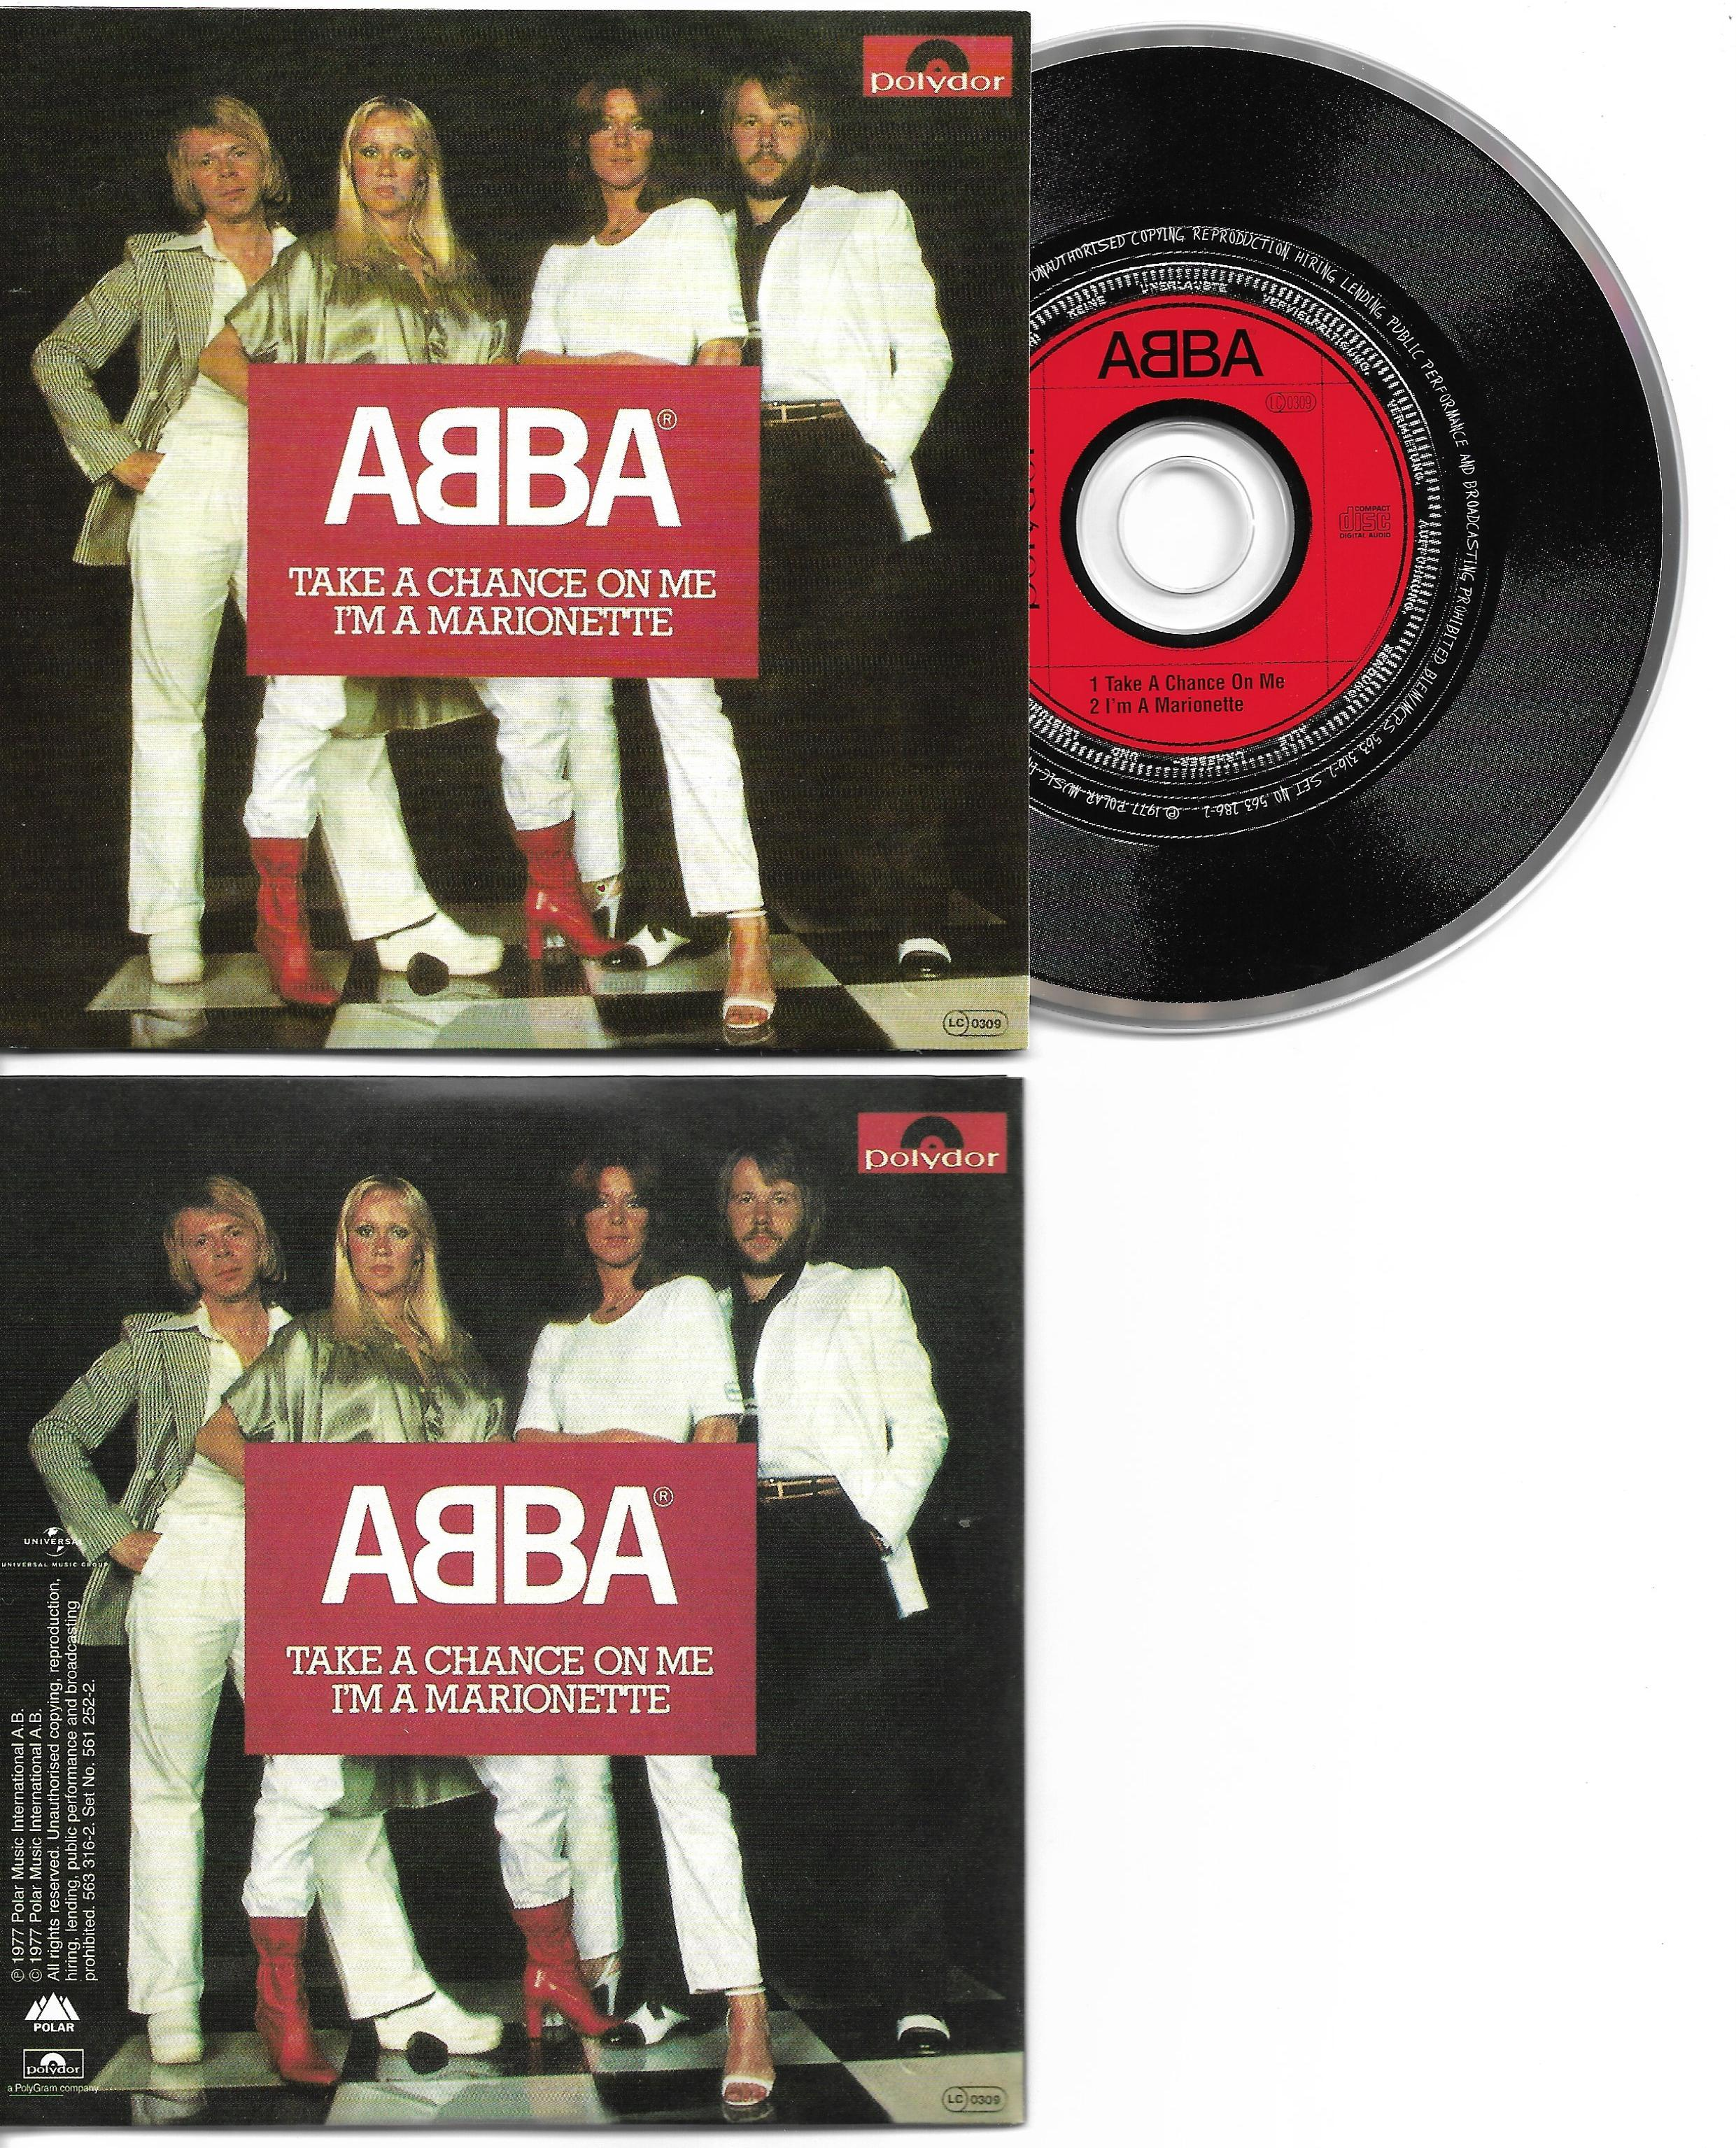 ABBA - Take a chance on me 2-Track CARD SLEEVE - CD single